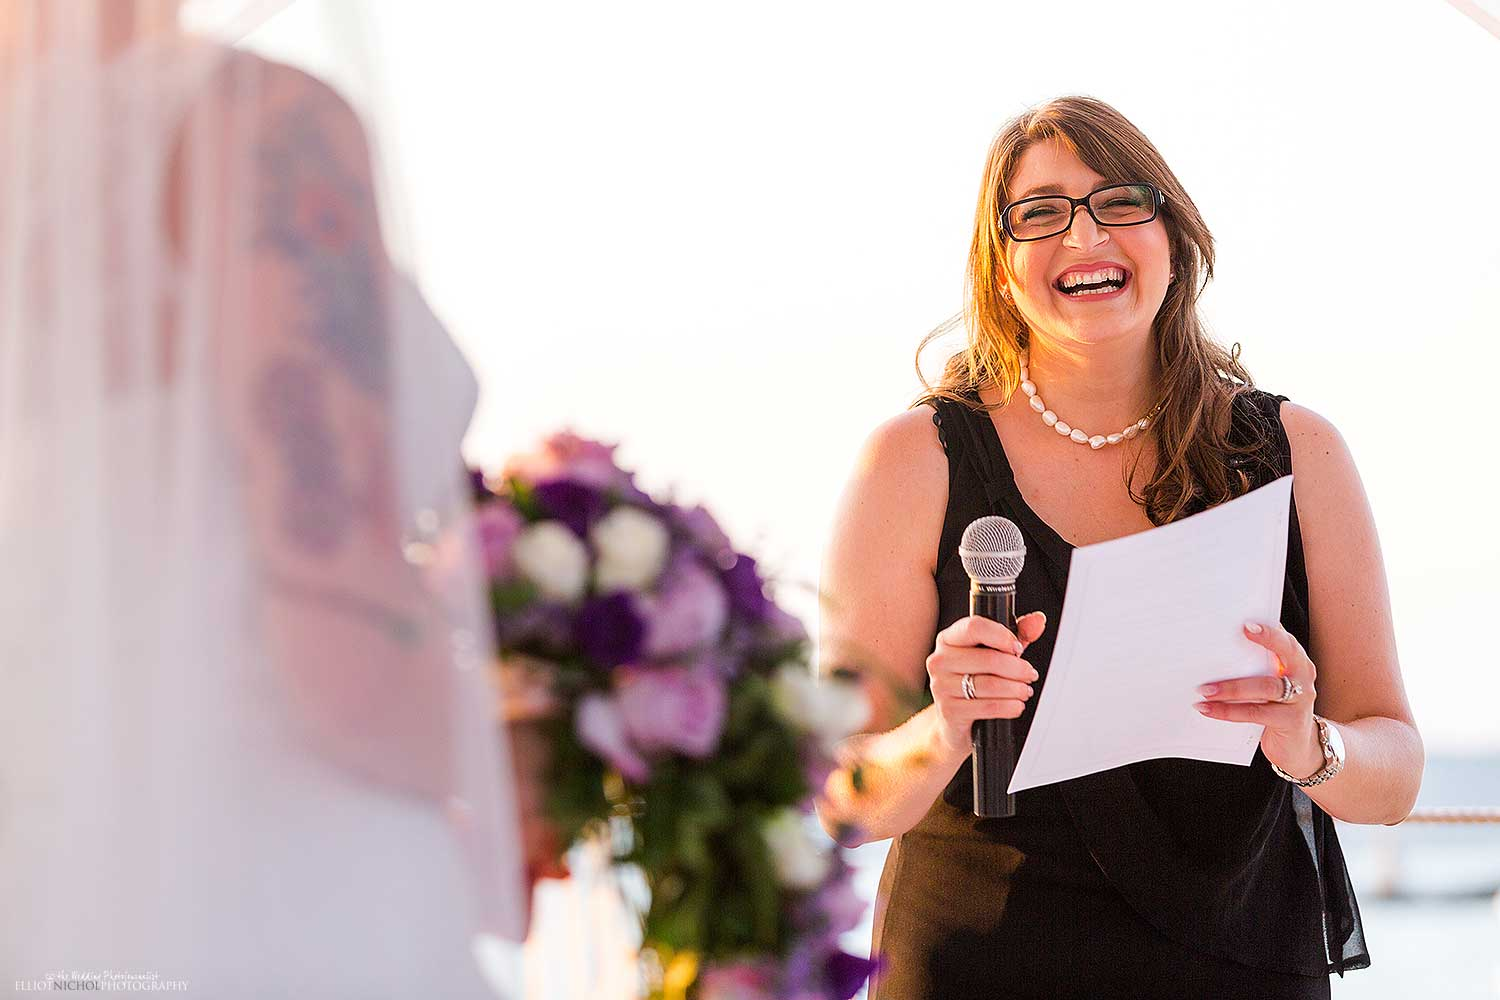 laughing-registrar-wedding-ceremony-marriage-photography